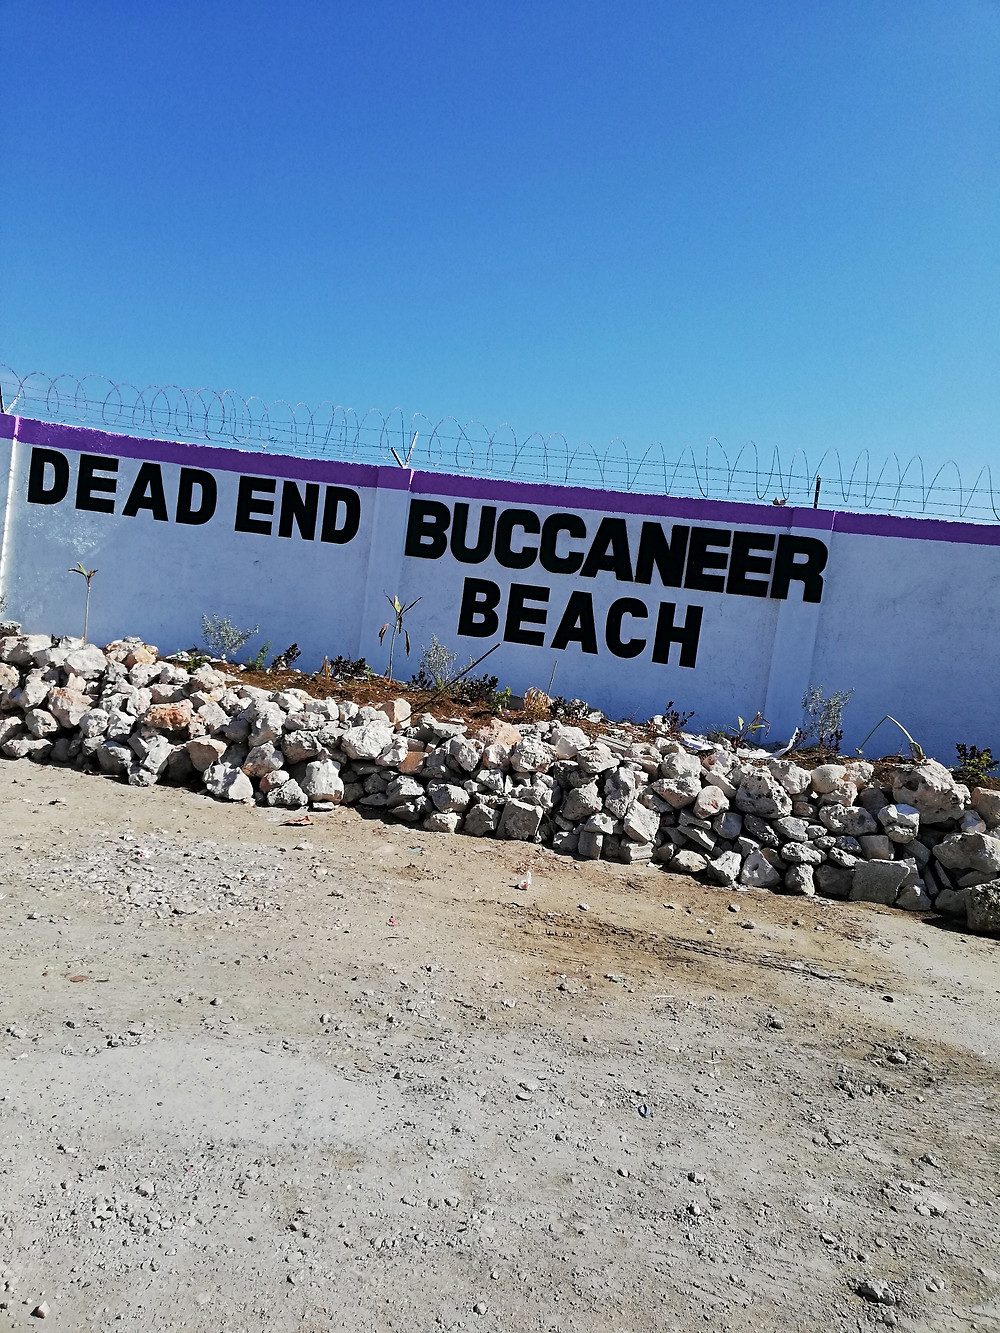 The beach sign at the perimeter of the Airport